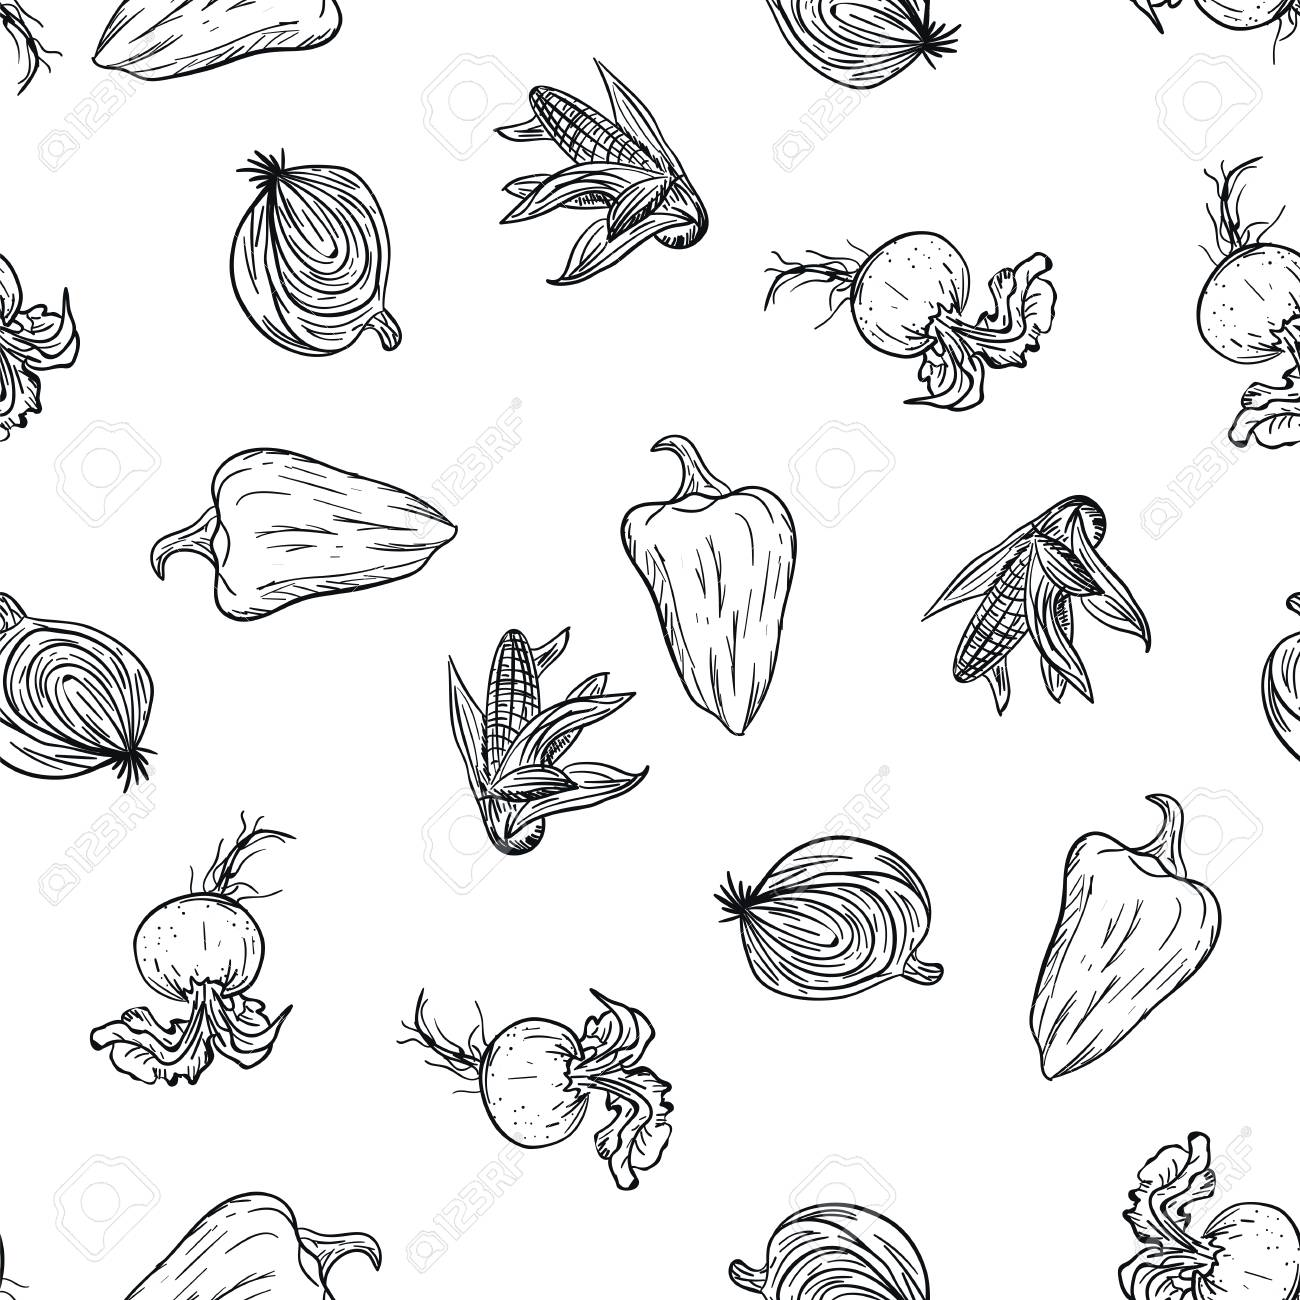 Vegetable doodle pattern hand drawing on white background. Doodle drawing vegetable pattern. Ripe autumn crop and farming harvest. Market garden background. Fitness diet and healthy nutrition - 125733452